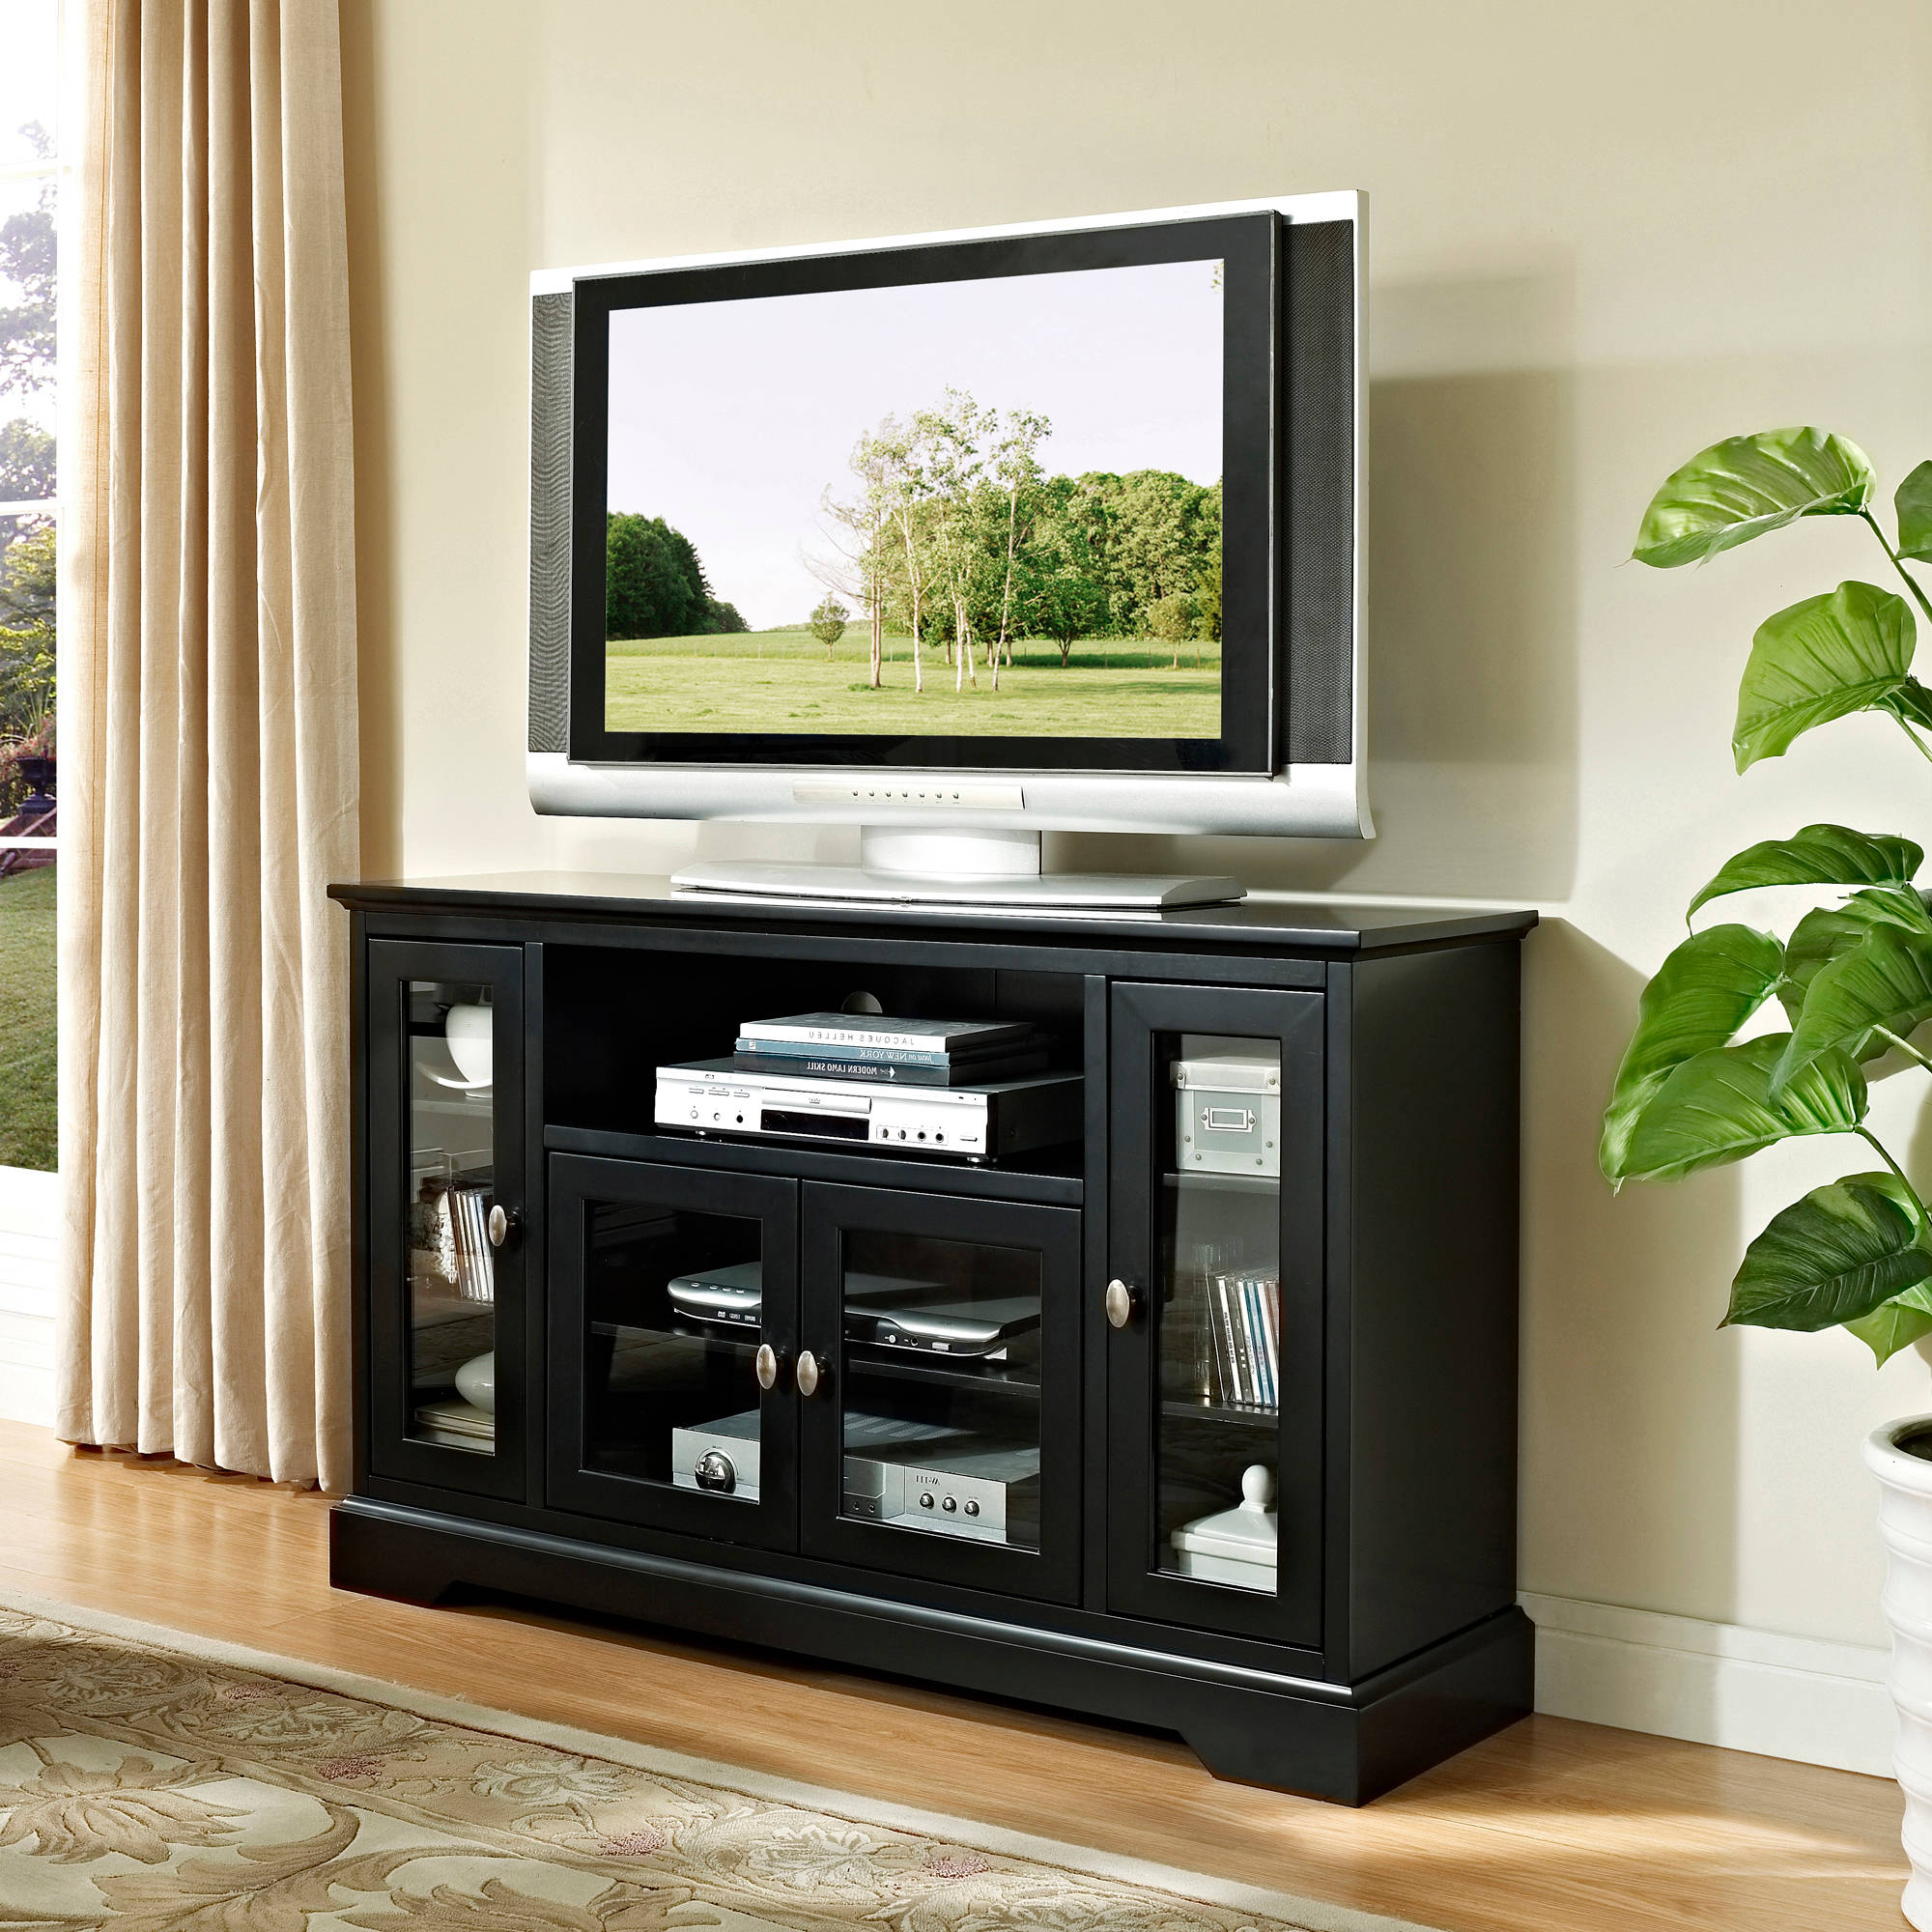 Walker Edison Highboy Style Wood Media Storage Tv Stand Console For For Well Liked Long Tv Stands Furniture (View 16 of 20)